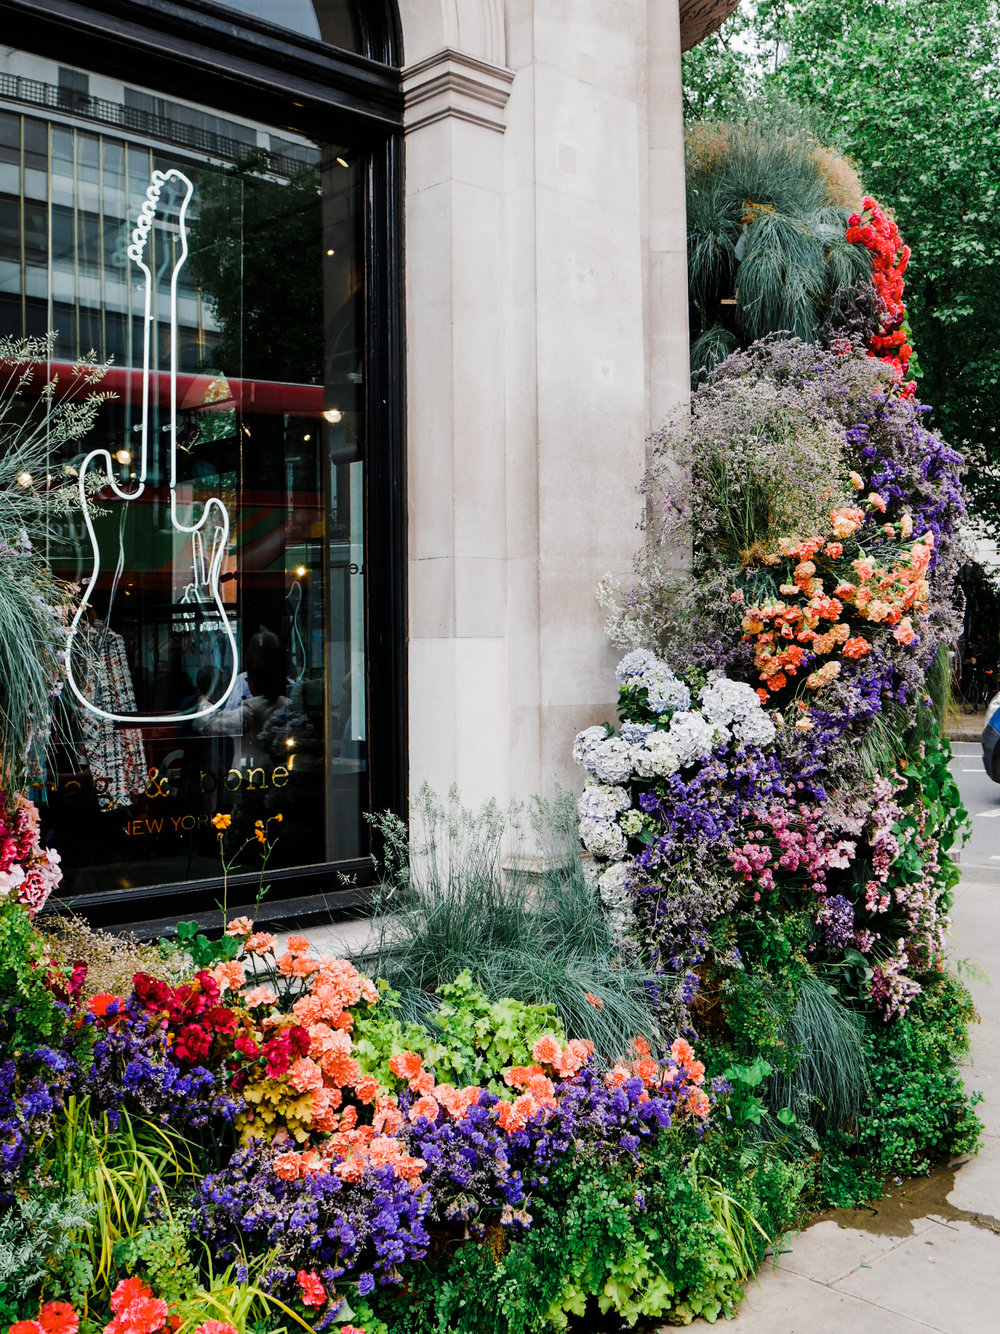 London in Bloom - Why you should visit London in the spring